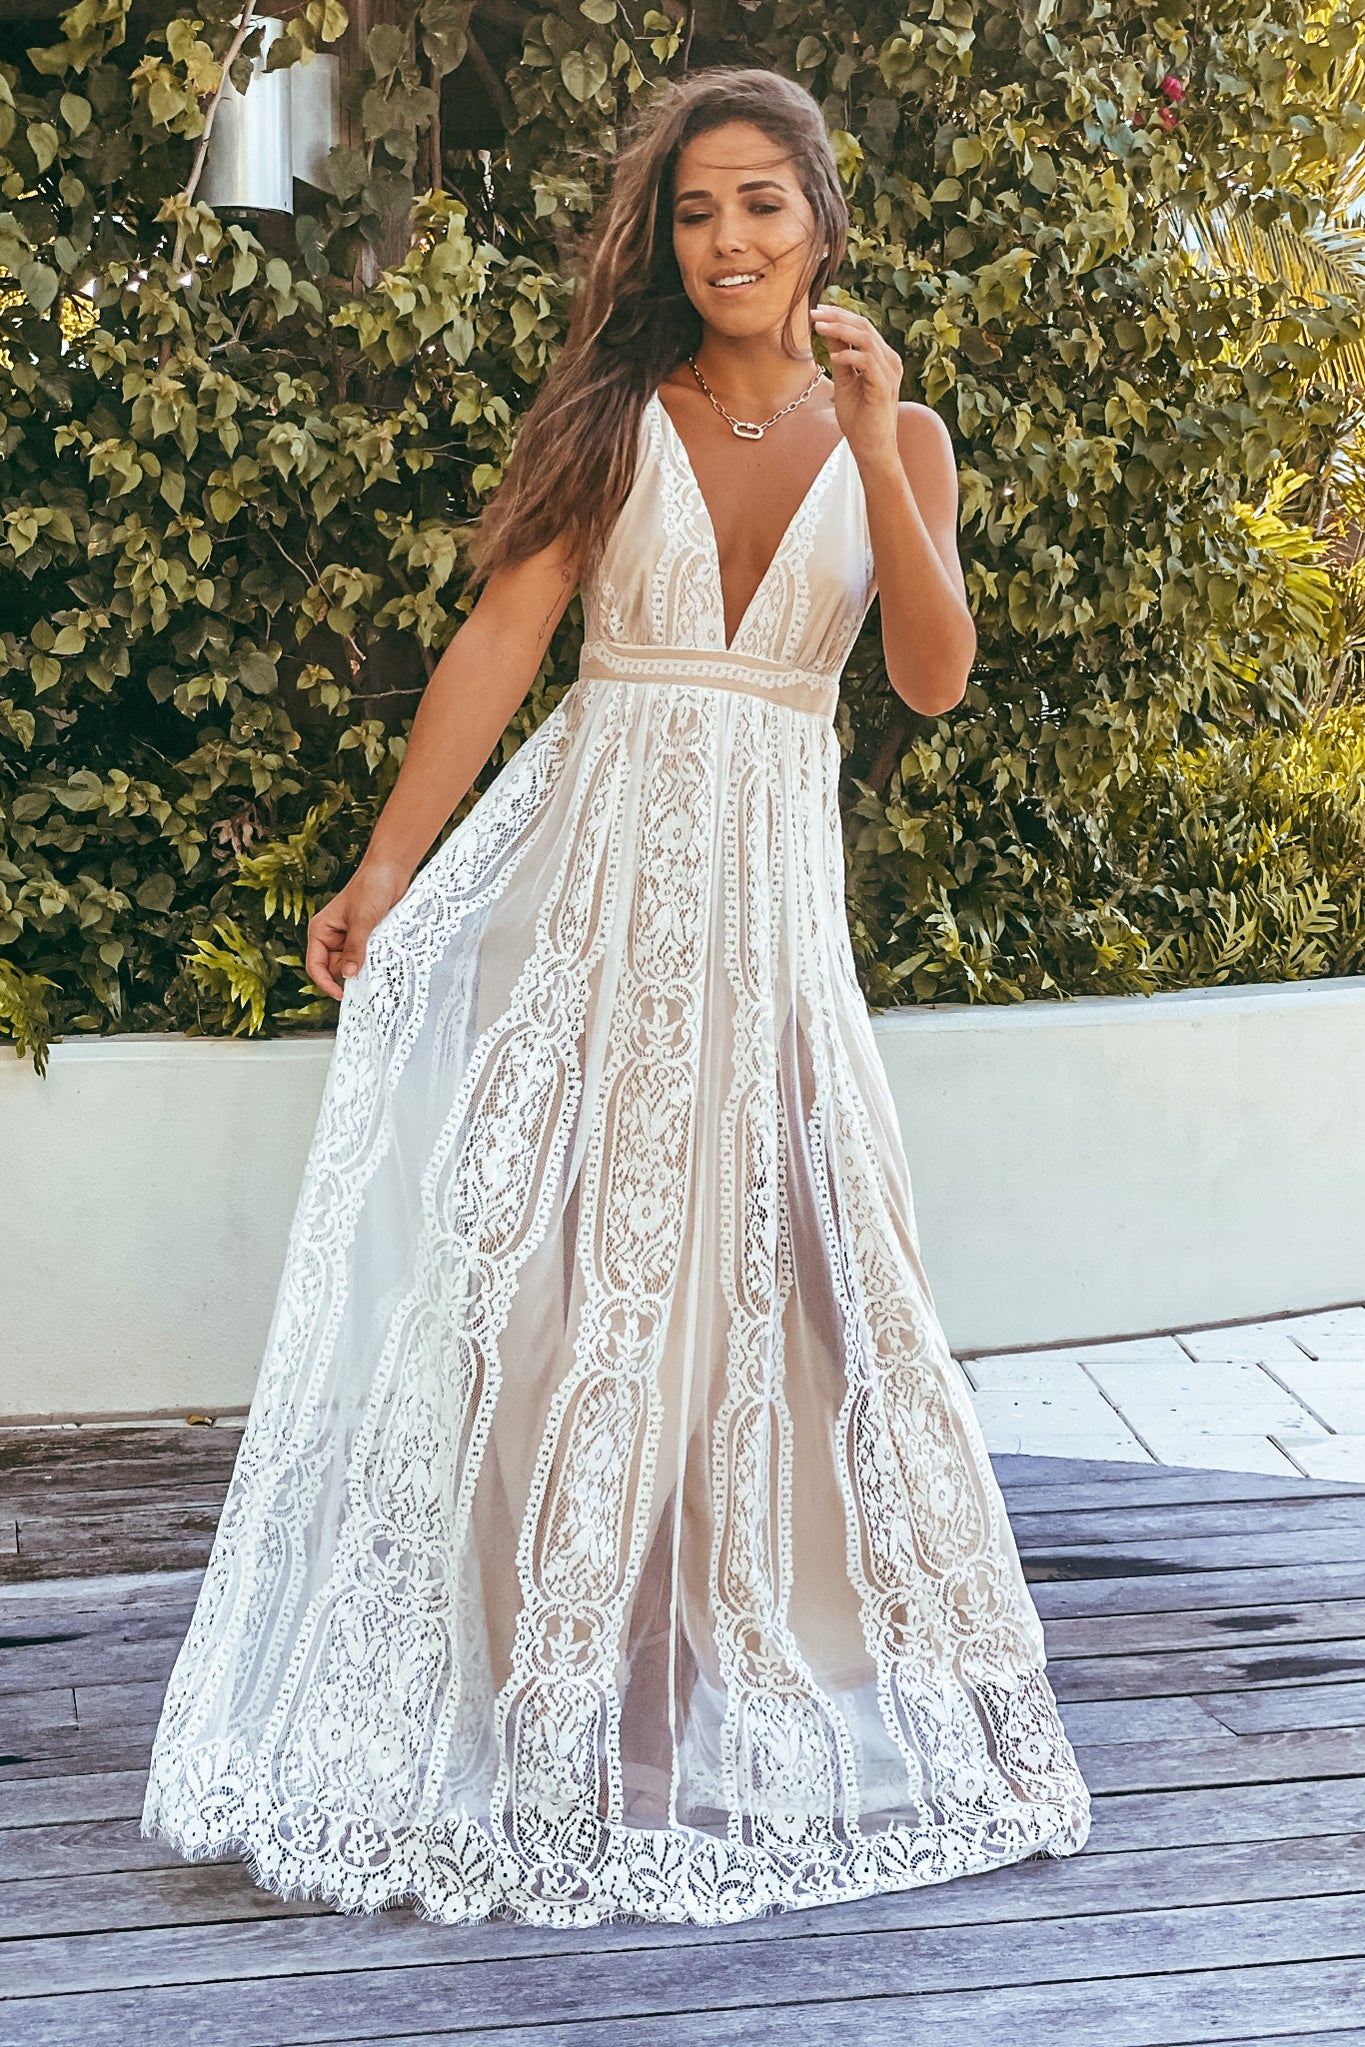 beige and white lace maxi dress